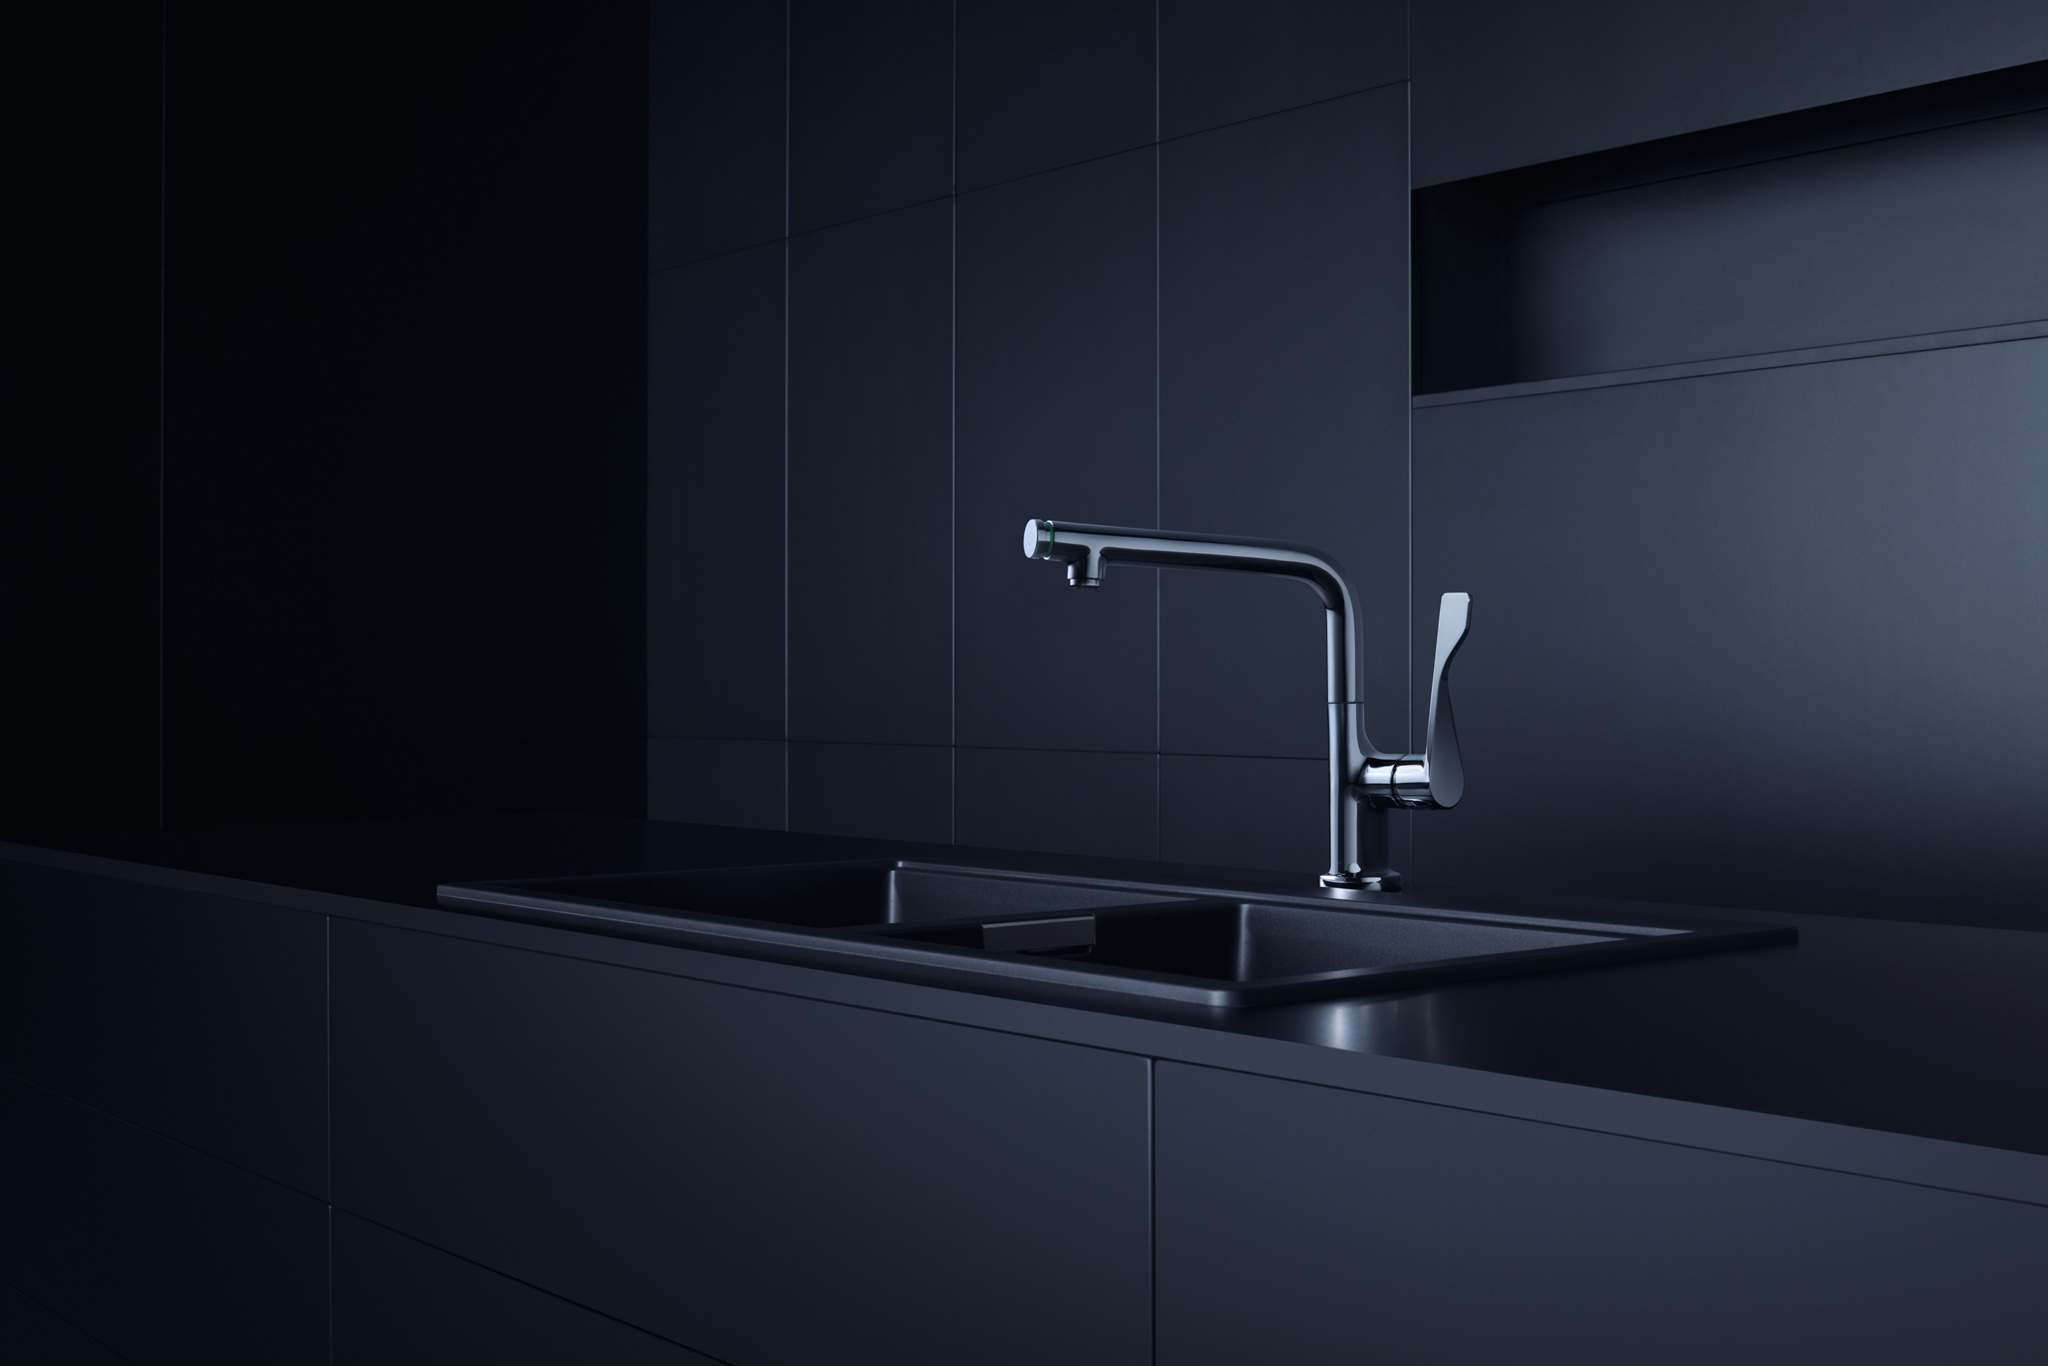 Axor Designer Faucets For Luxury Kitchens Axor Int